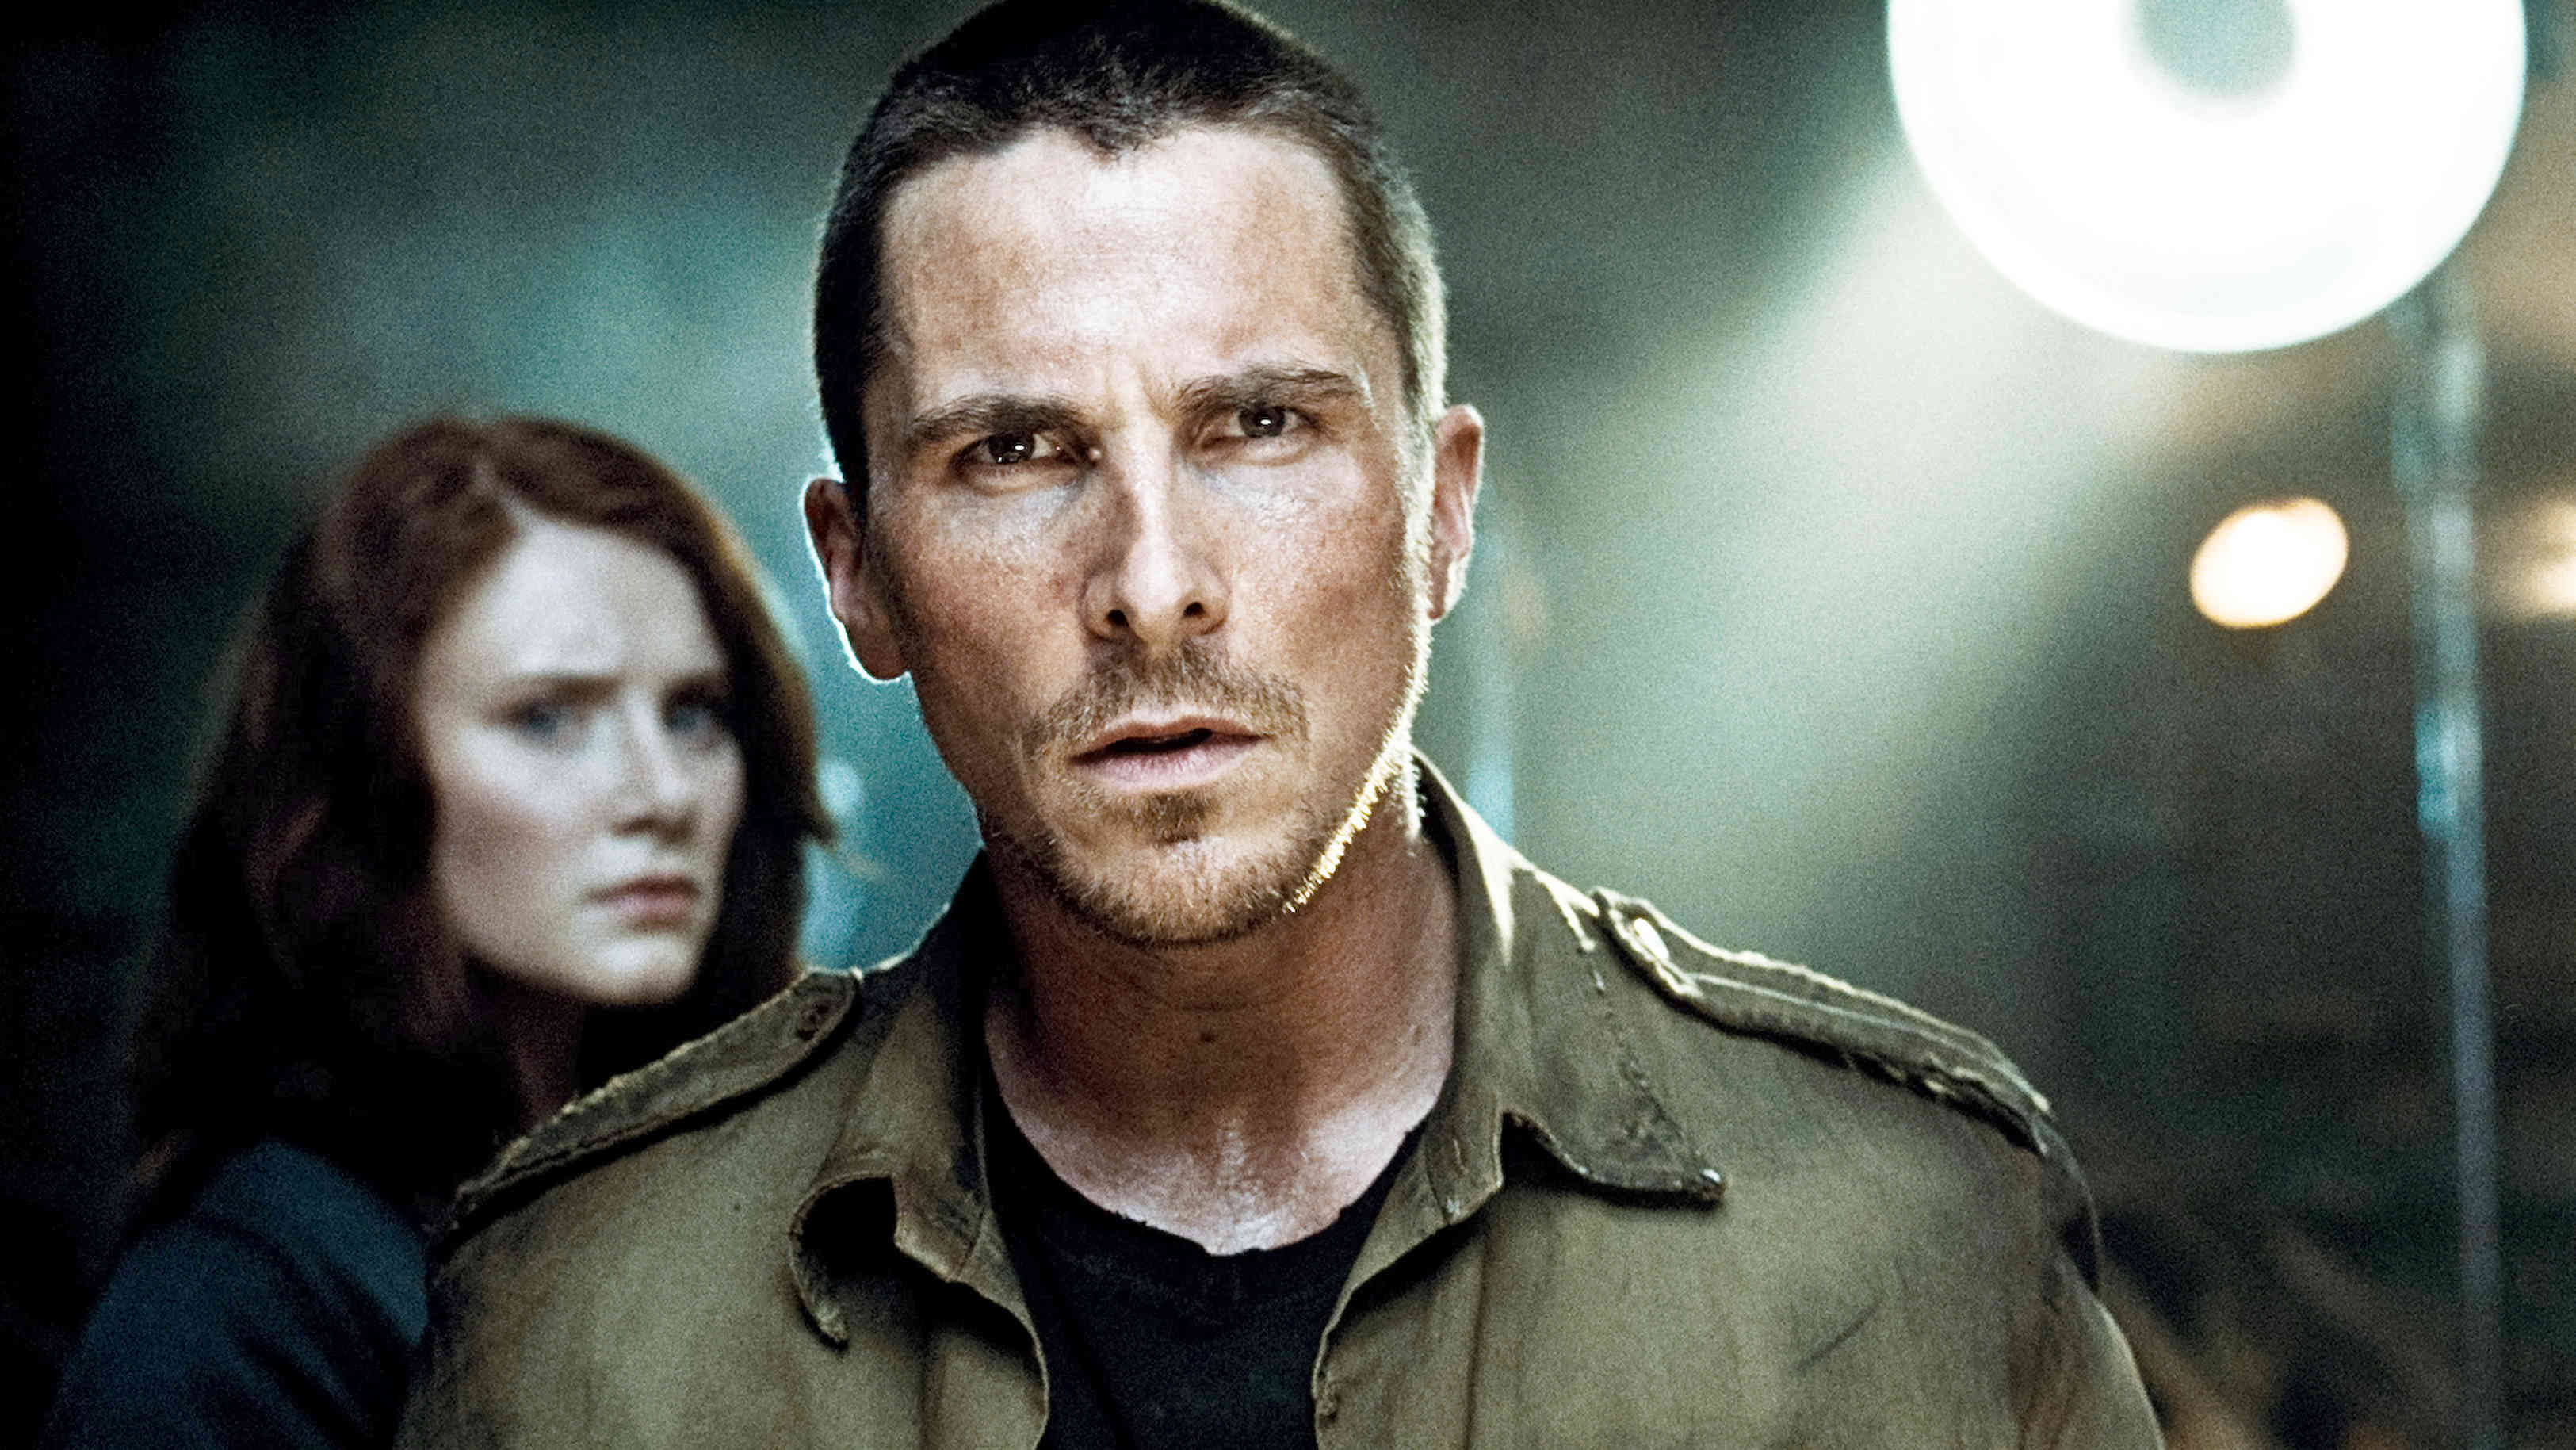 christian bale john connor